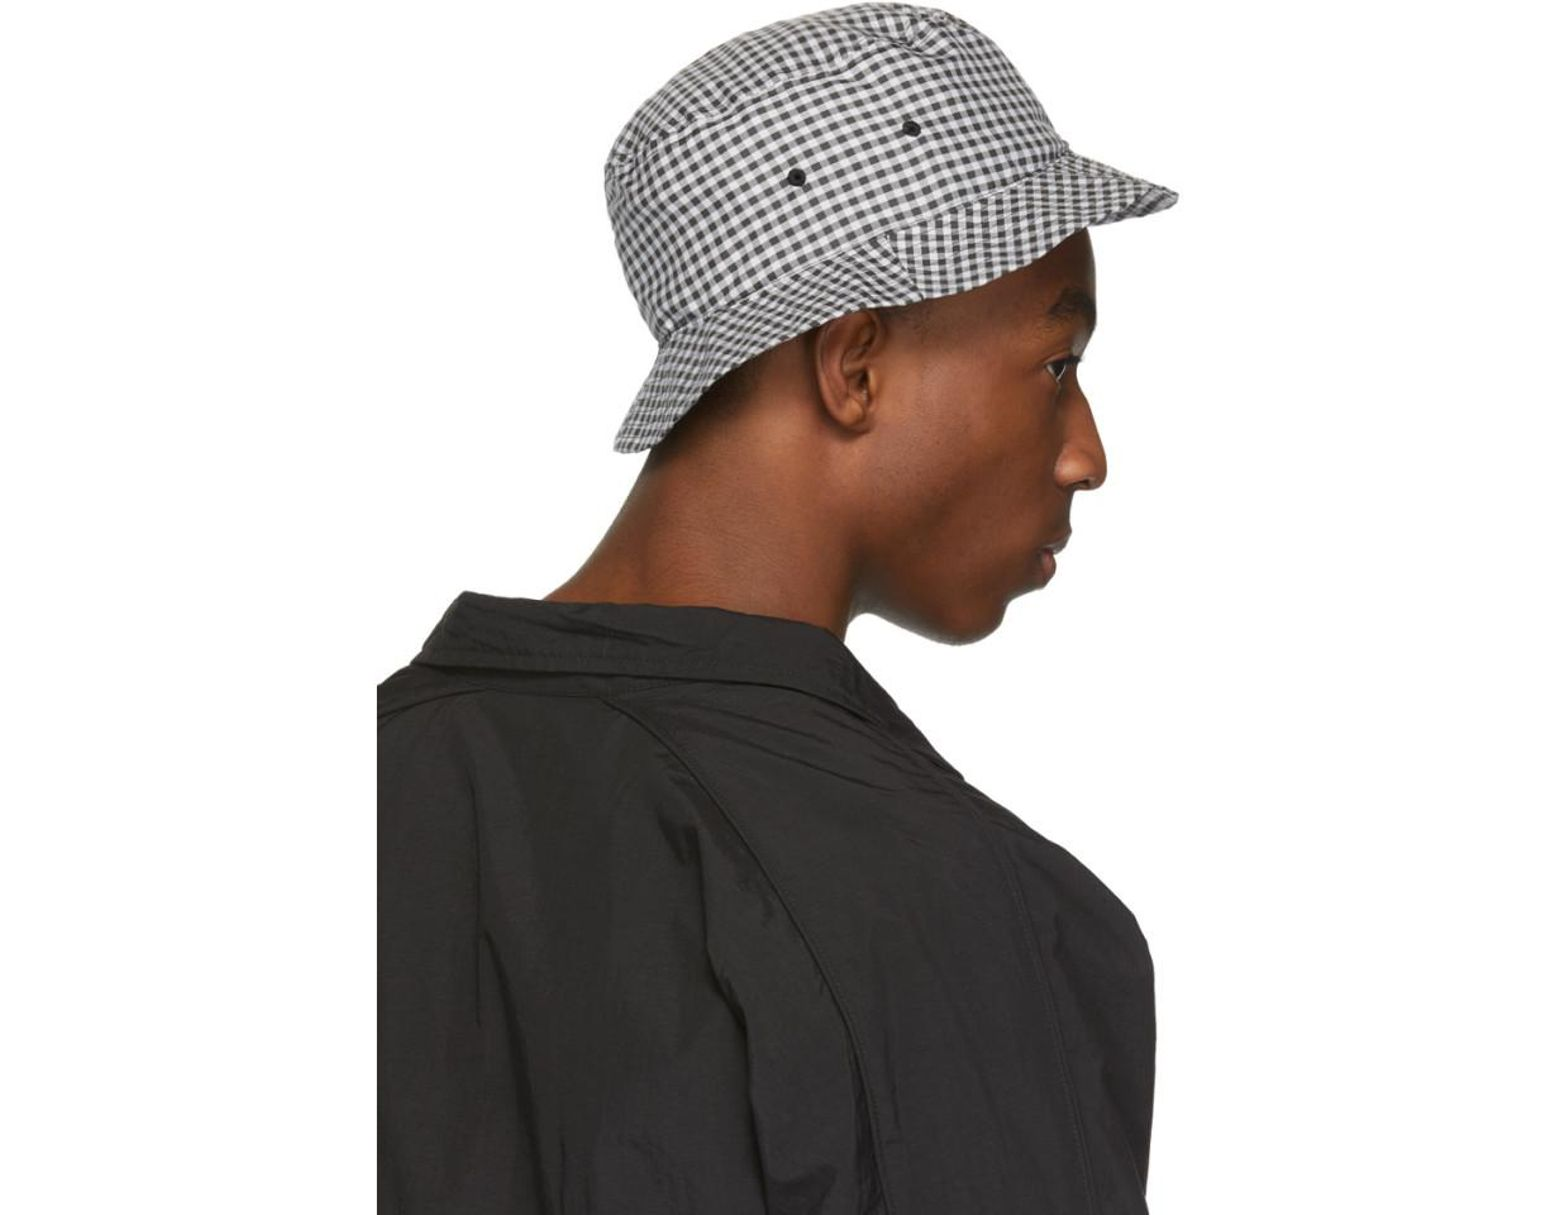 e70a5c64 Paa Black And White Gingham Bucket Hat in Black for Men - Lyst